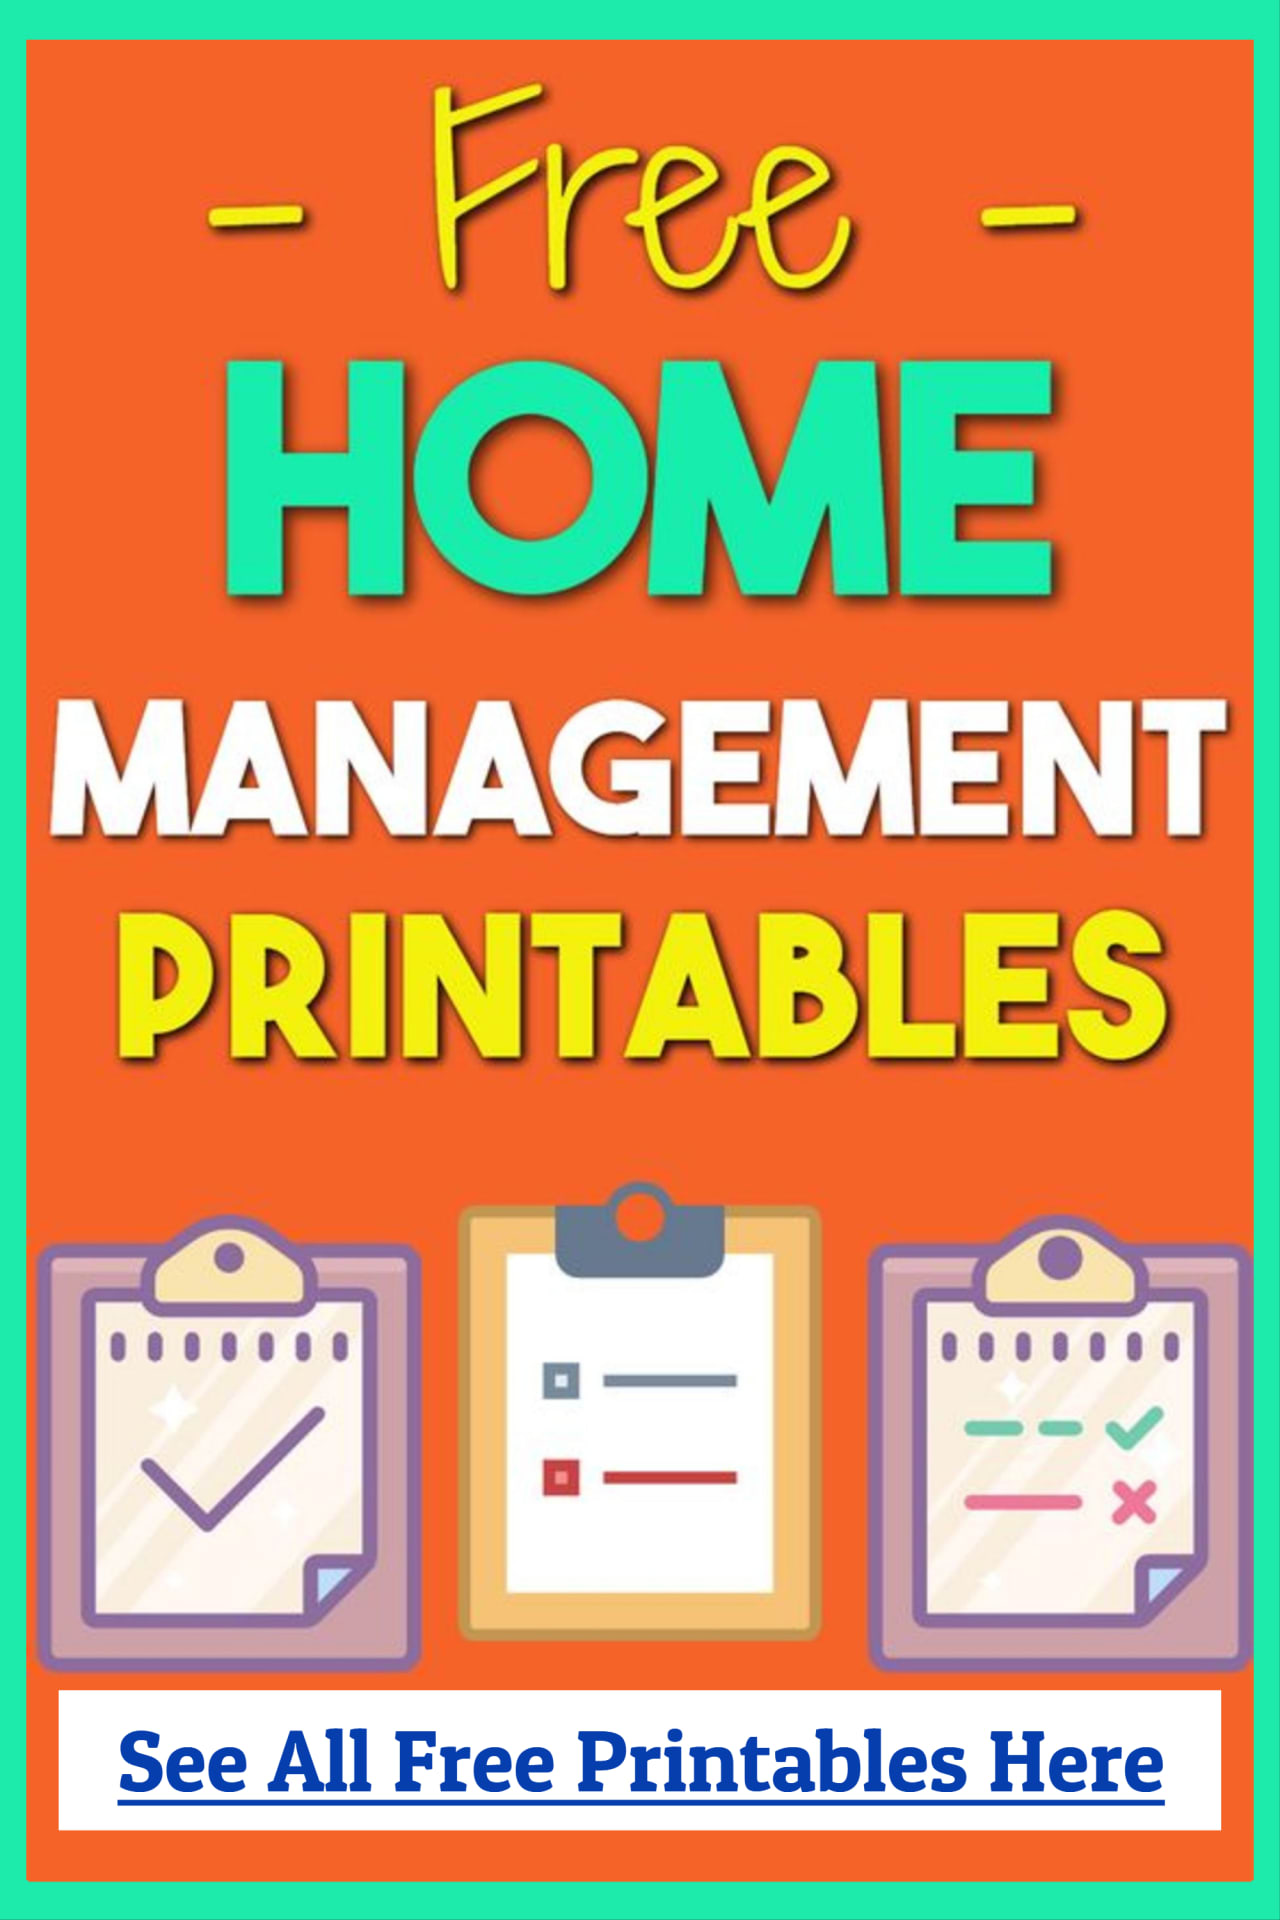 Home Management Binder Free Printables, worksheets, PDFs, logs and password keepers for your home management binder